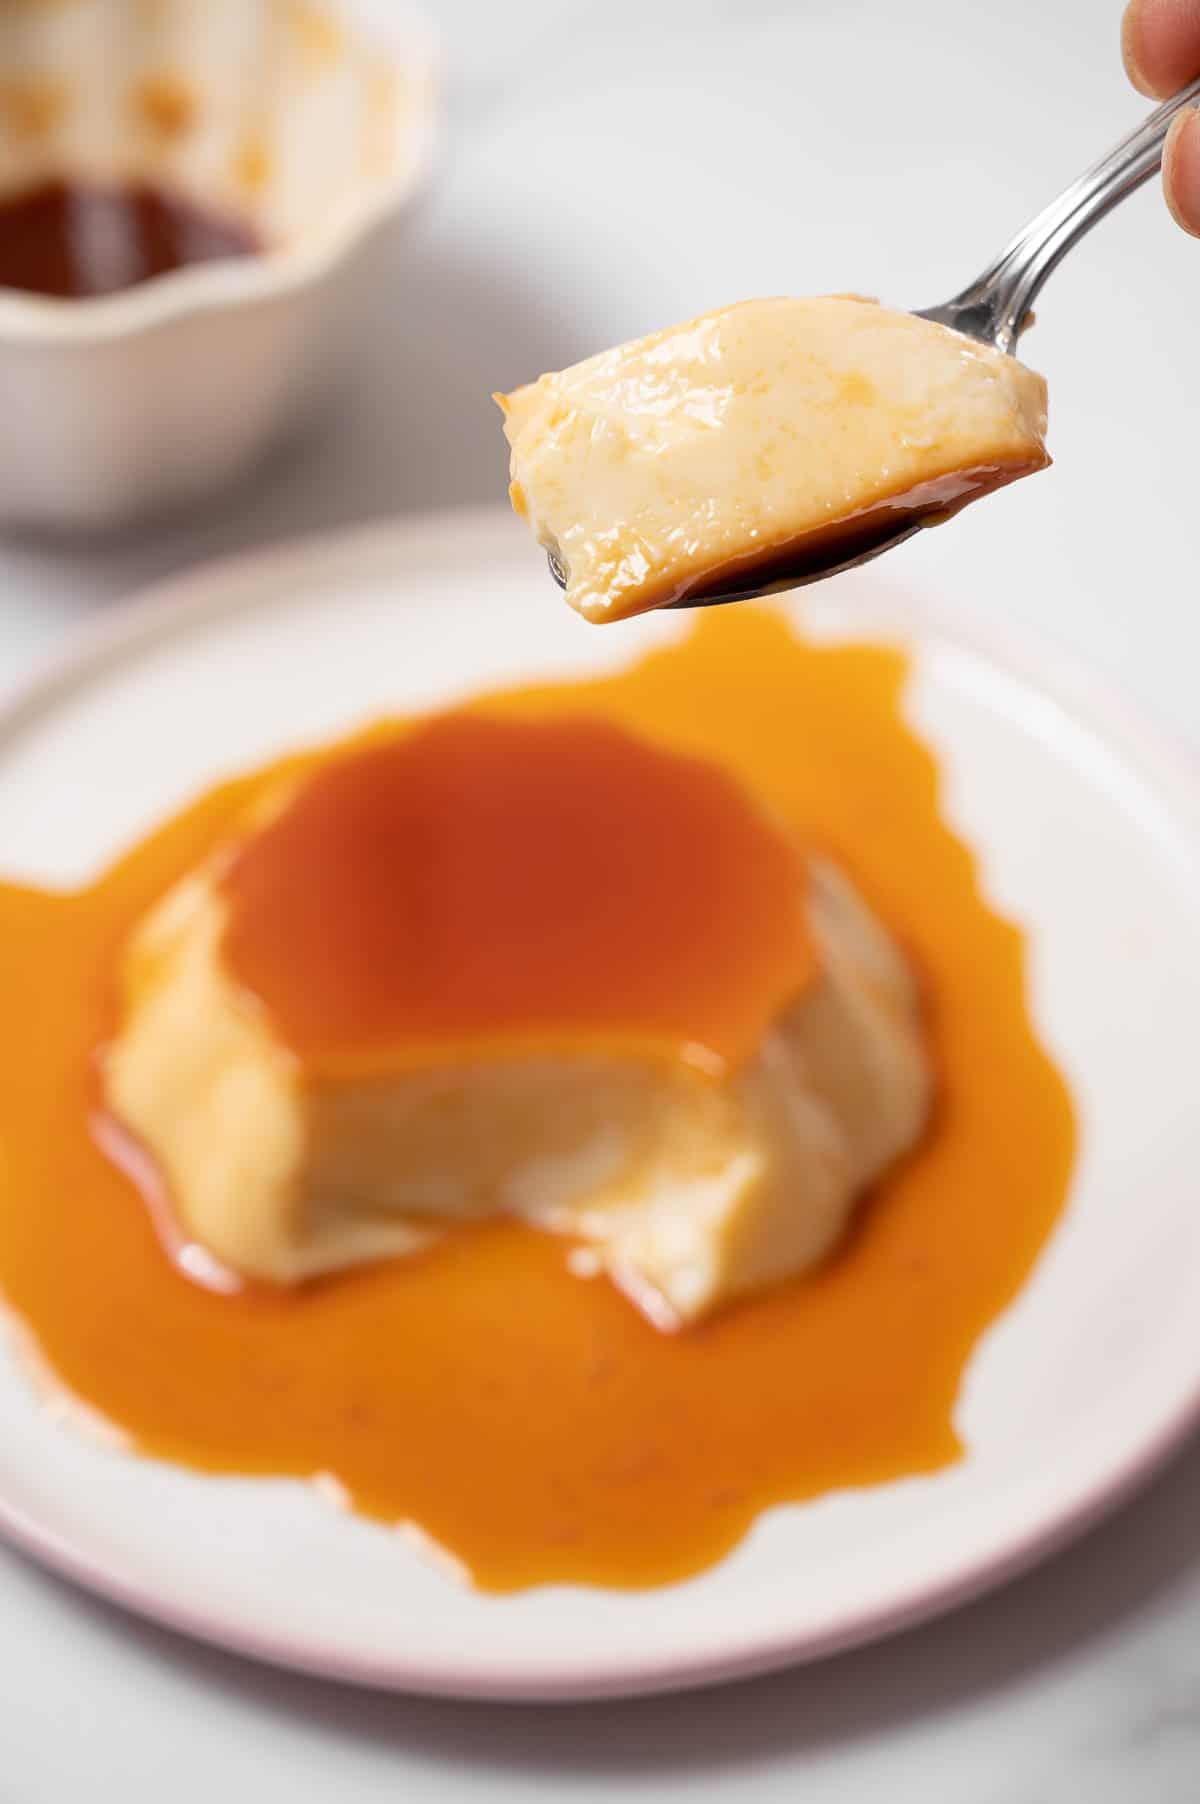 Bite of Spanish flan on a spoon